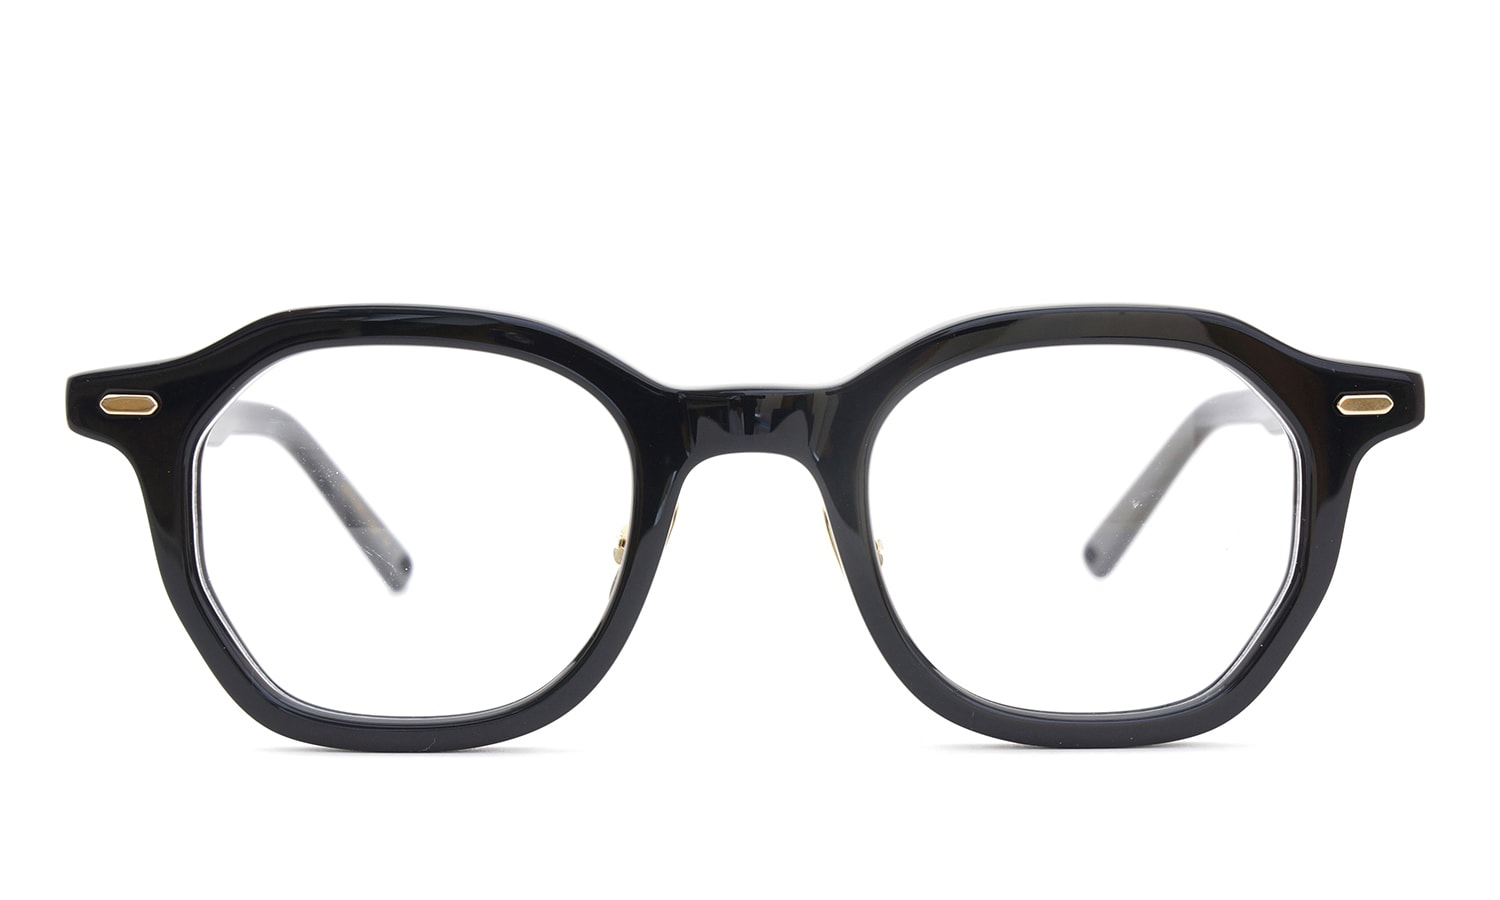 OG × OLIVER GOLDSMITH Re:BETSY 45 リ:ベッツィ 2